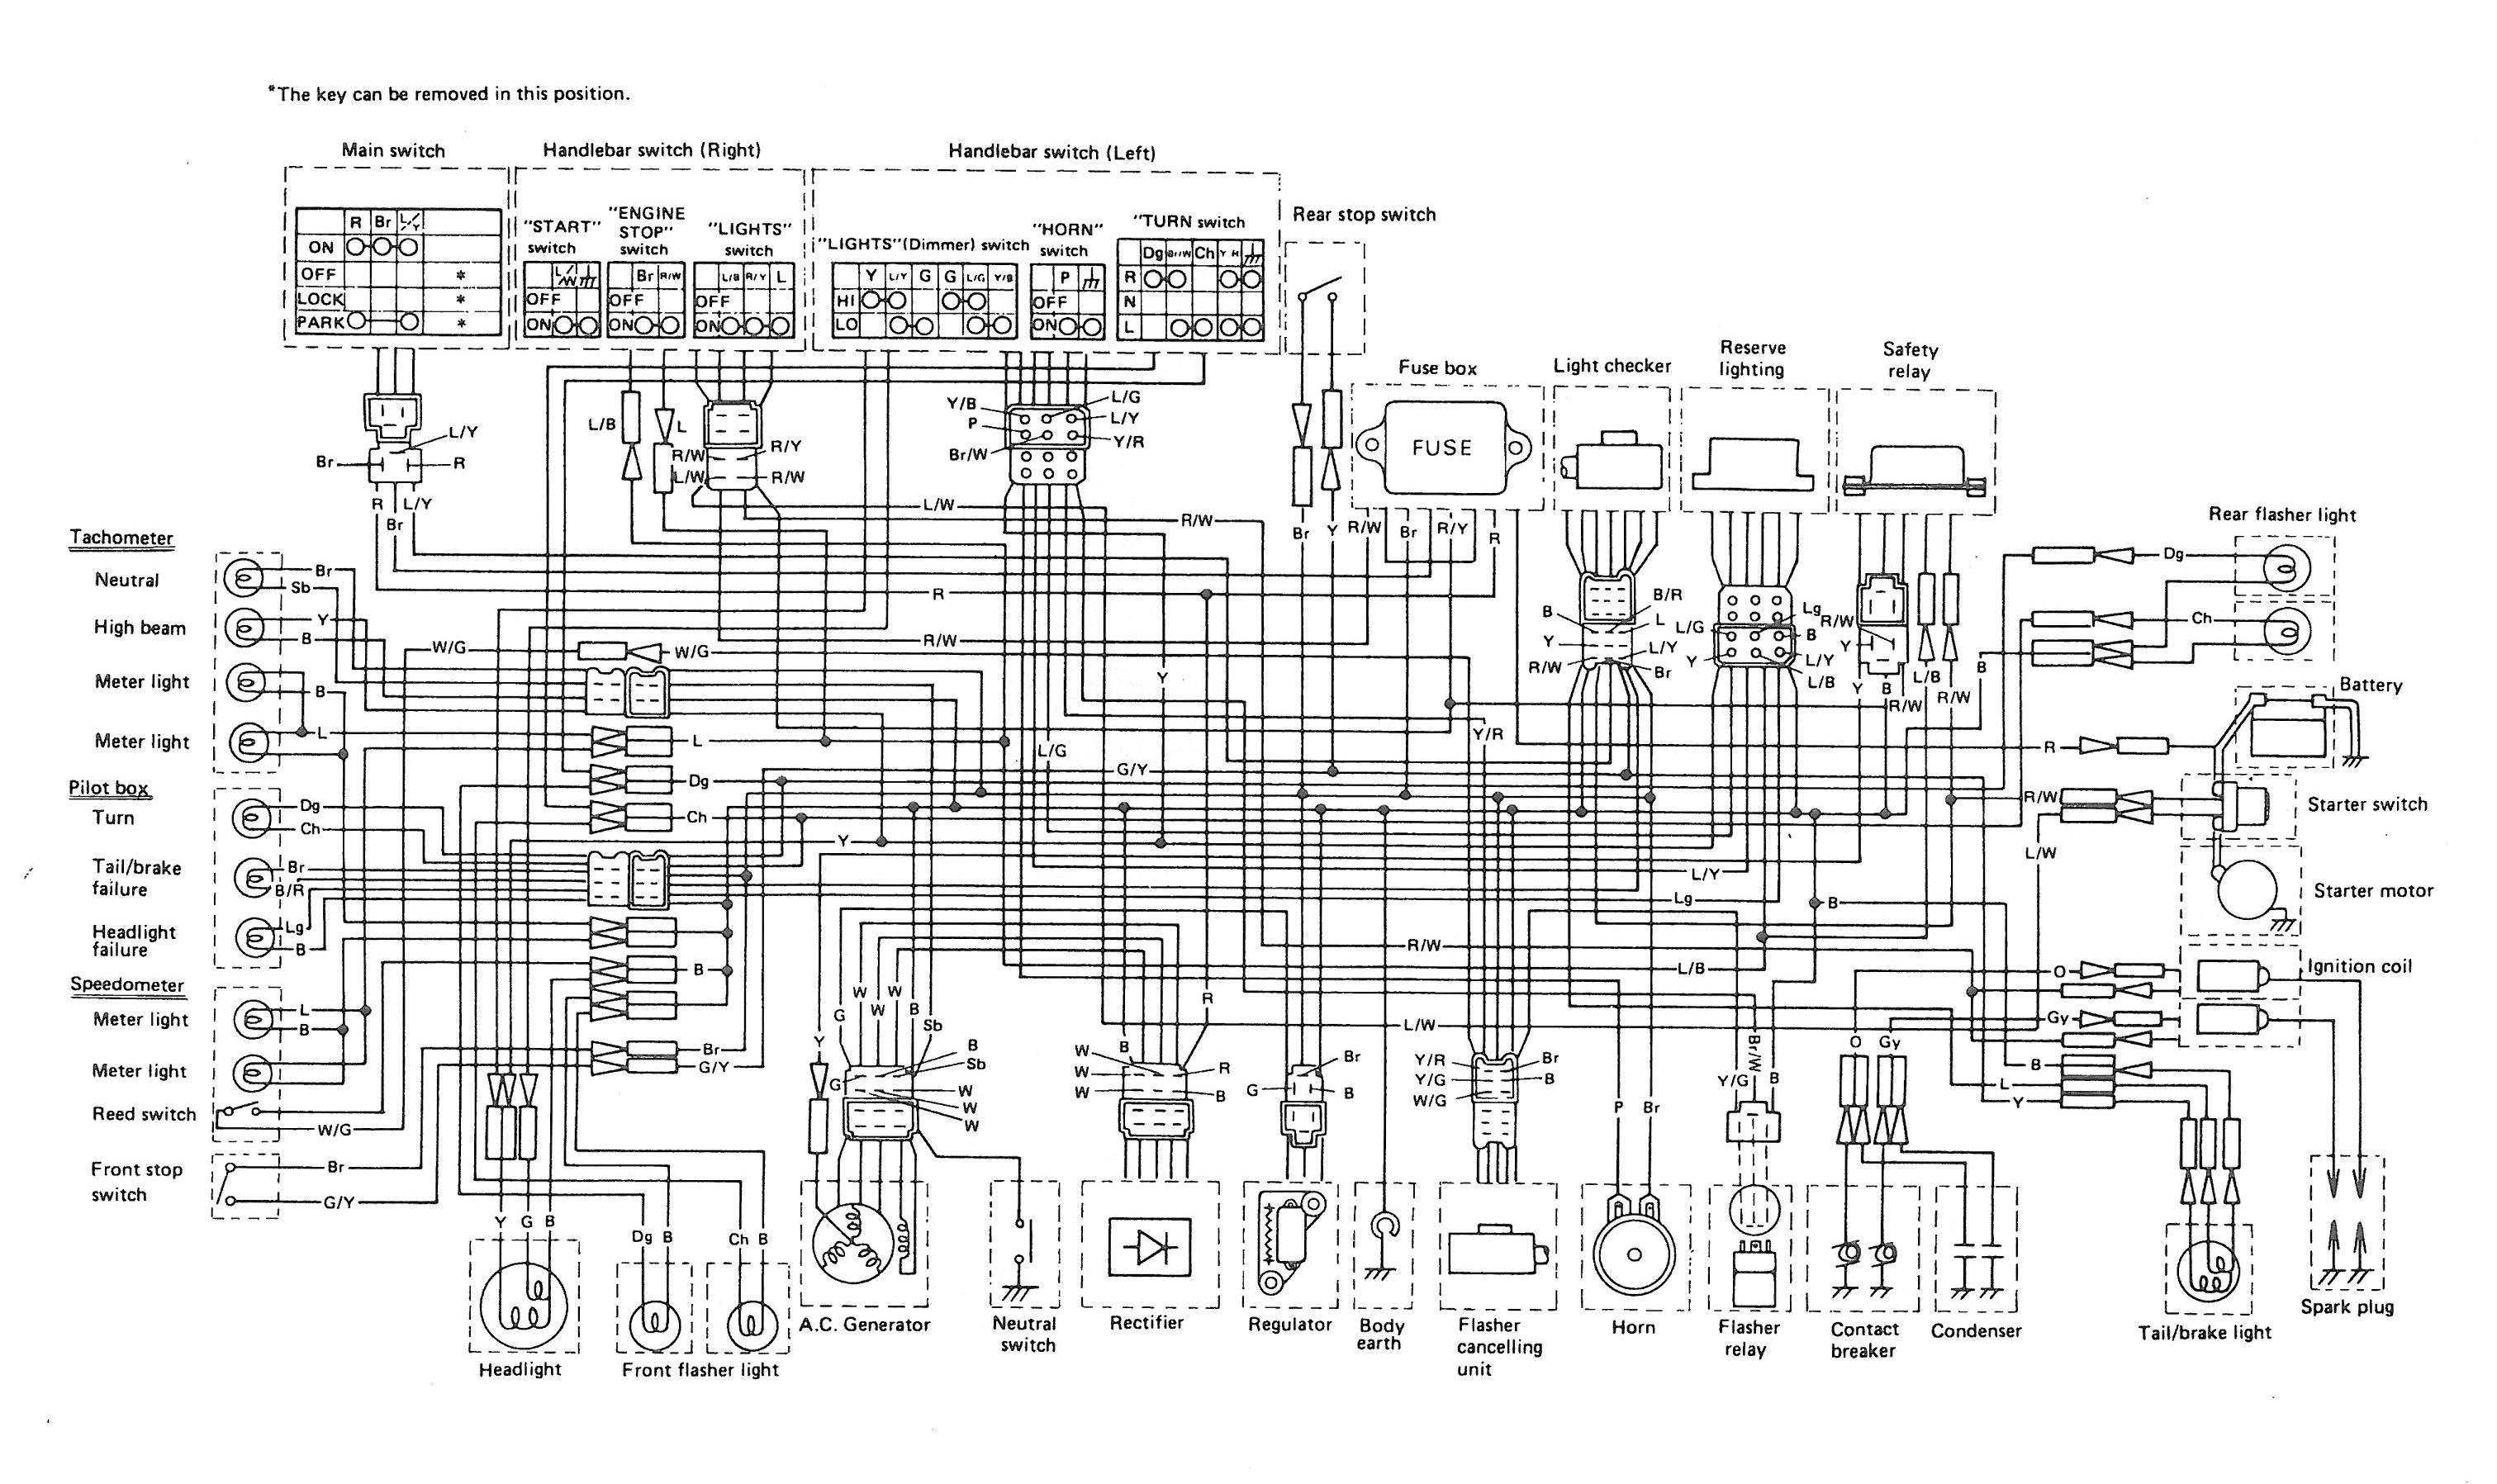 78 xsse wiring 6 1 wiring thexscafe 1981 xs400 wiring diagram at gsmportal.co